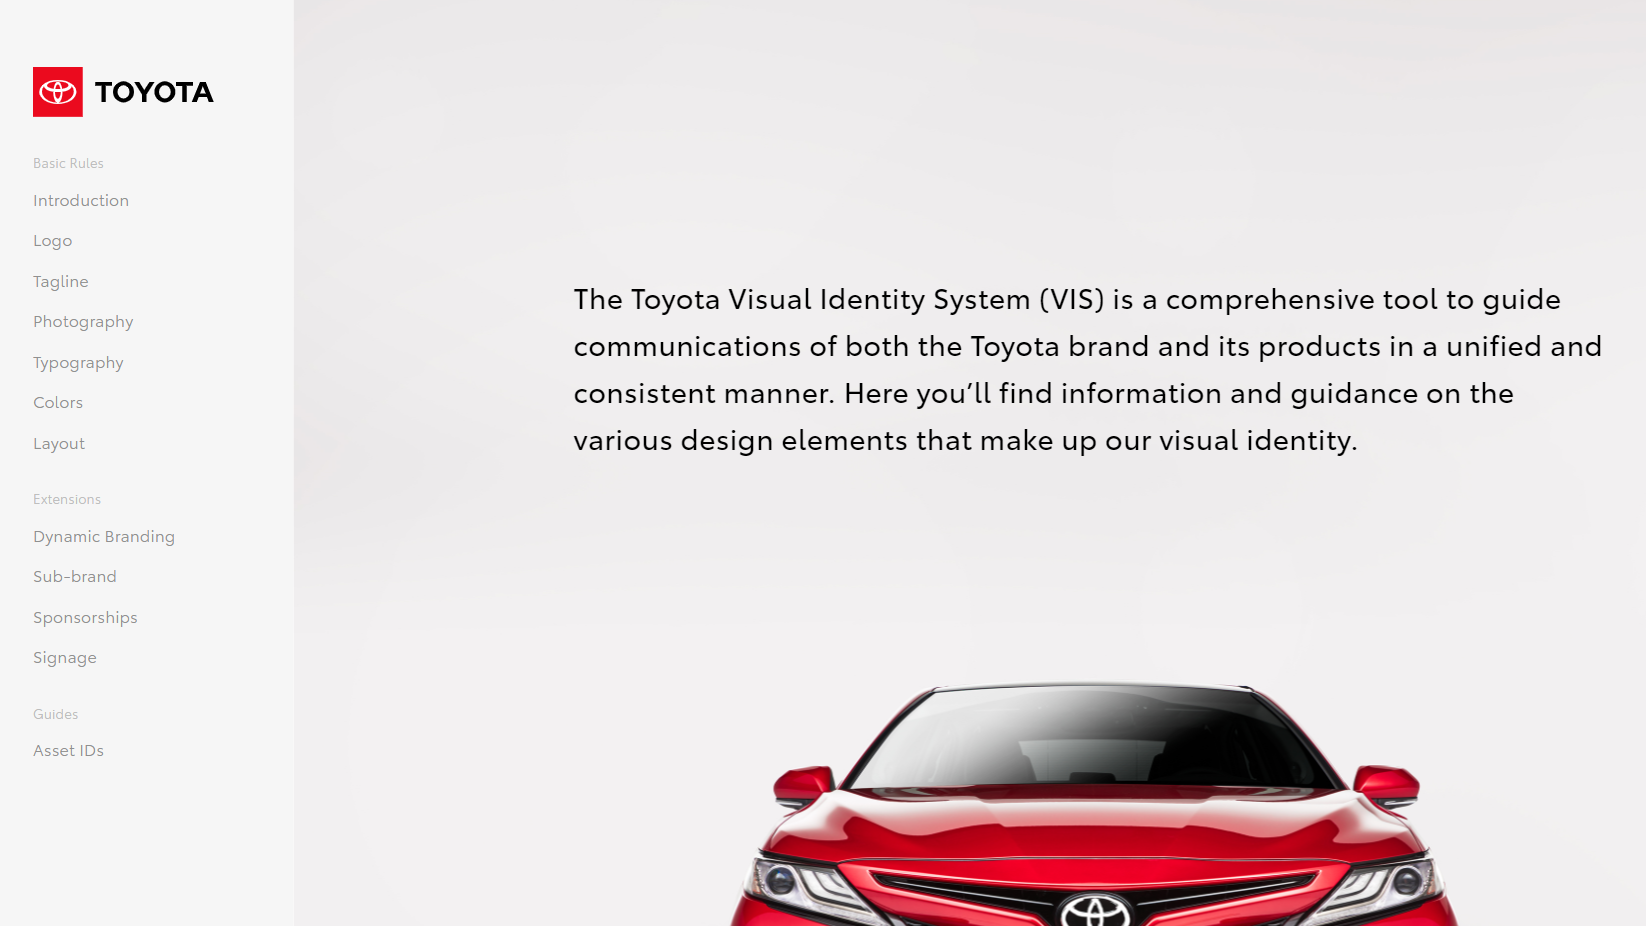 Toyota's Brand Guide